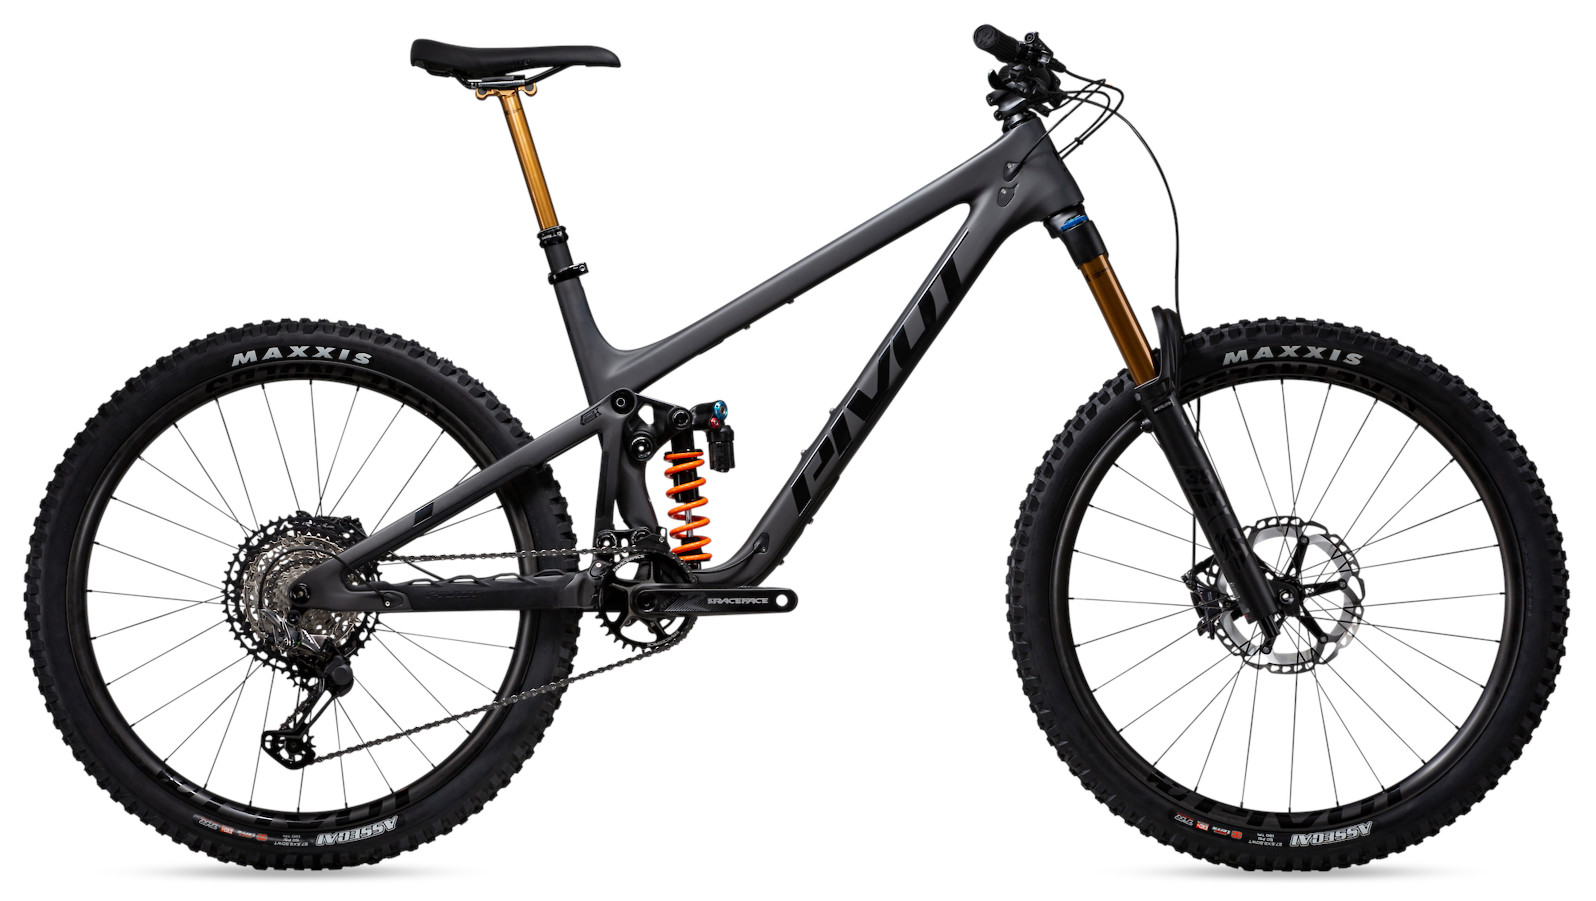 Stealth Mach 6 with Pro XT/XTR Coil build and Reynolds wheels